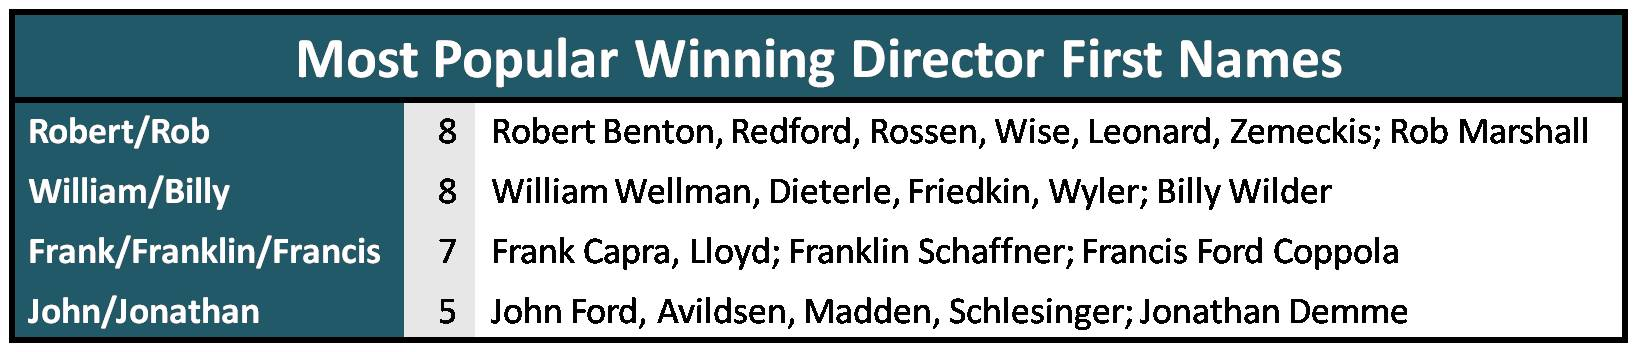 Directors Who Won More Than Once